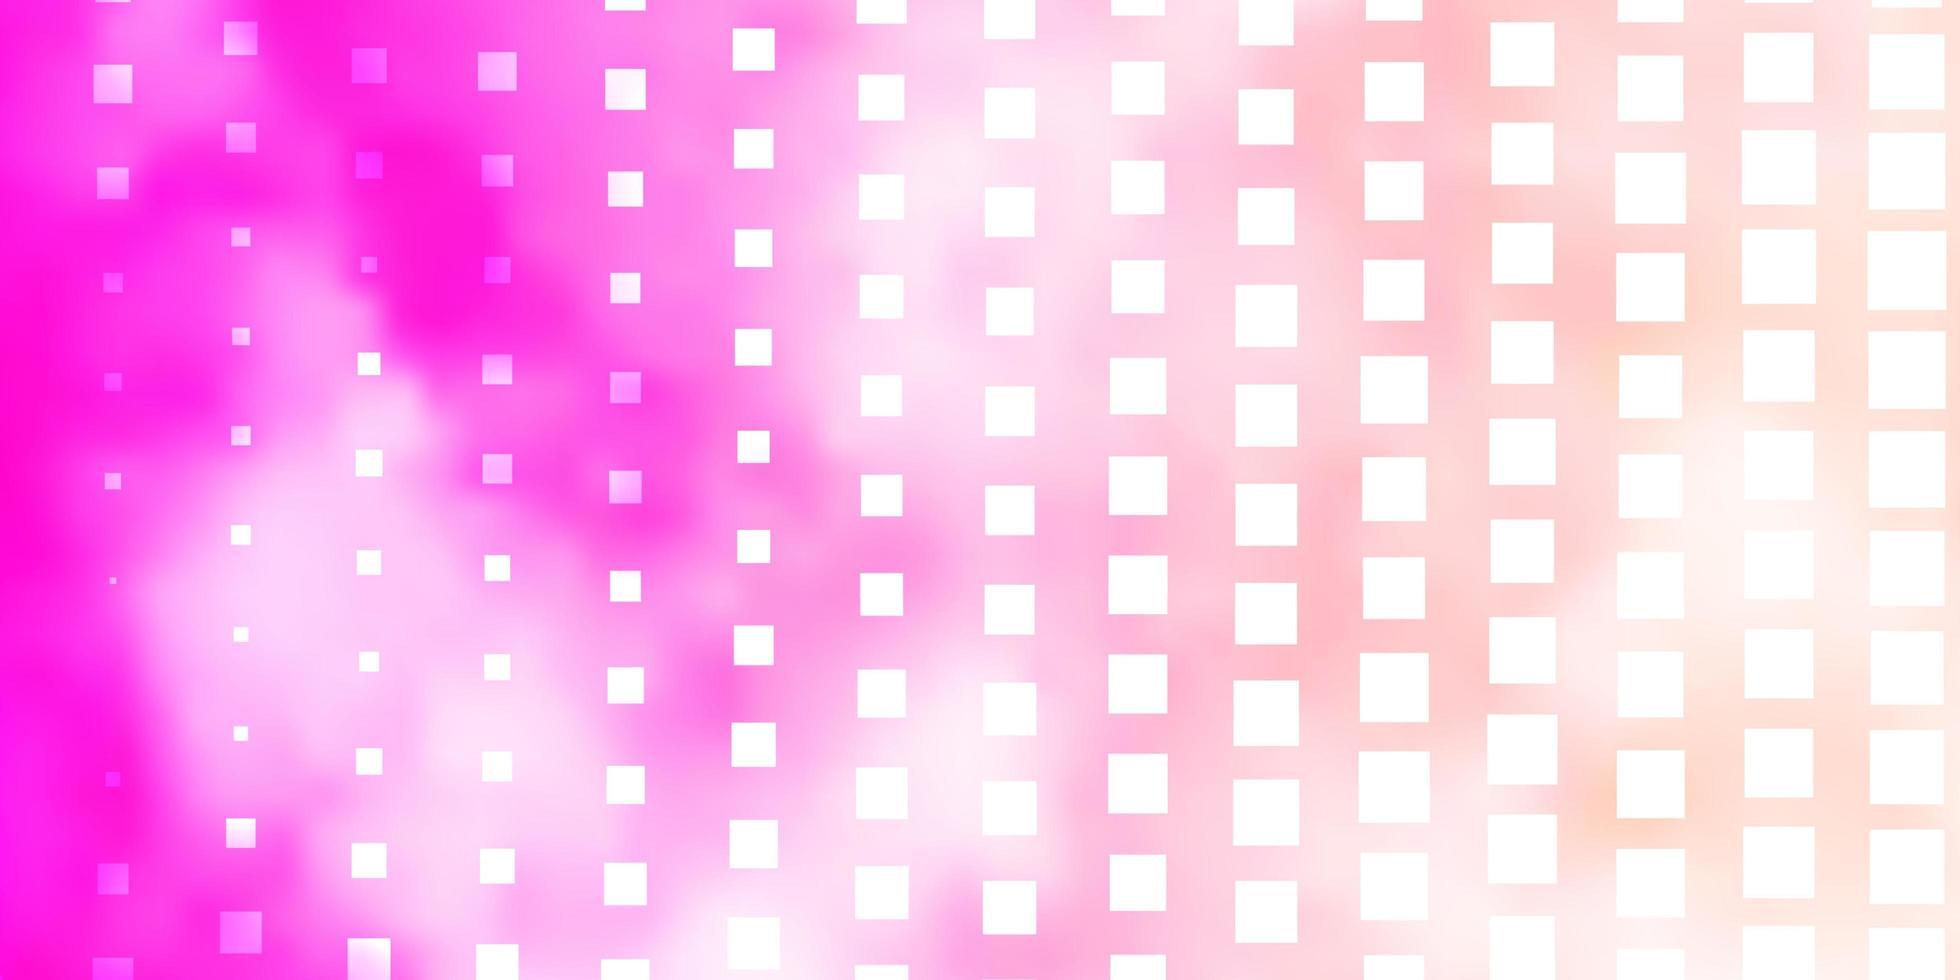 Light Pink texture in rectangular style. vector